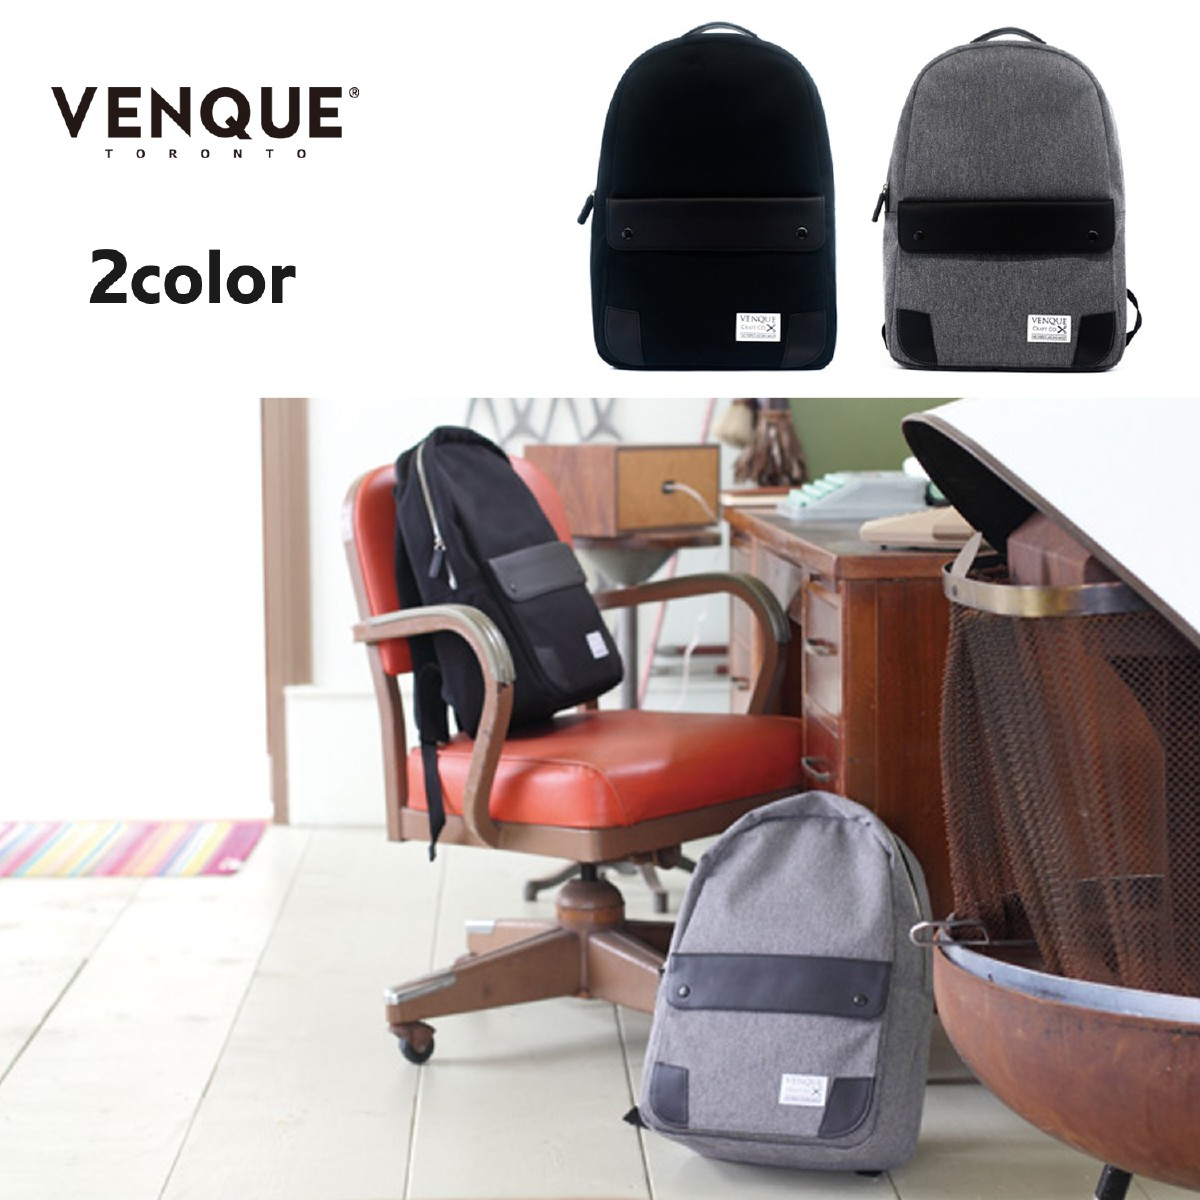 VENQUE ヴェンク BLACK EDITION The Classic